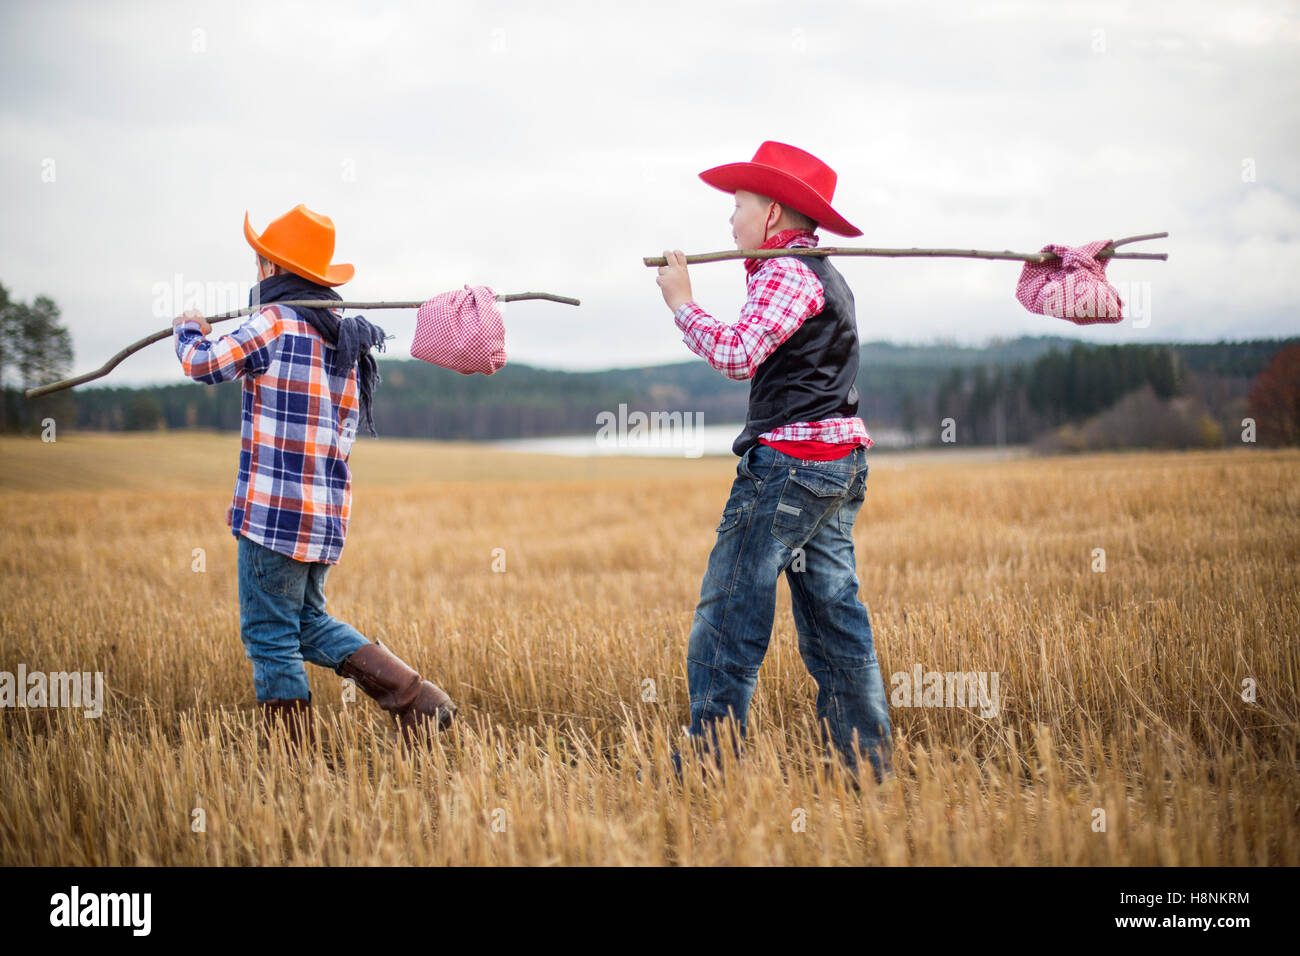 Boys (8-9) wearing cowboy clothes walking in field - Stock Image